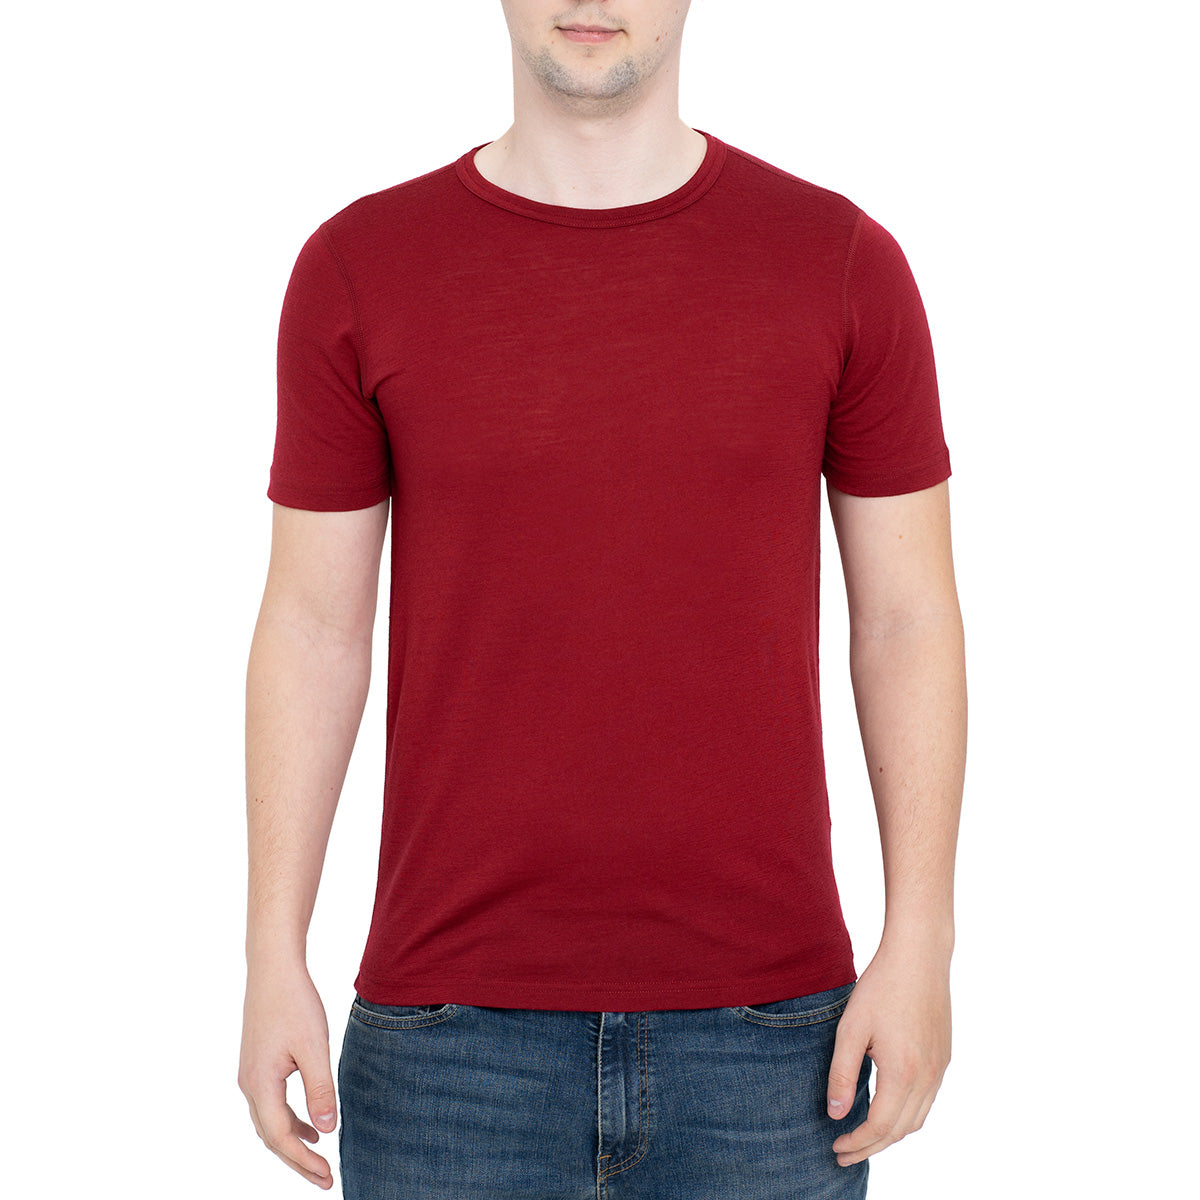 menique Men's Merino 160 Short Sleeve Crew Royal Cherry Color